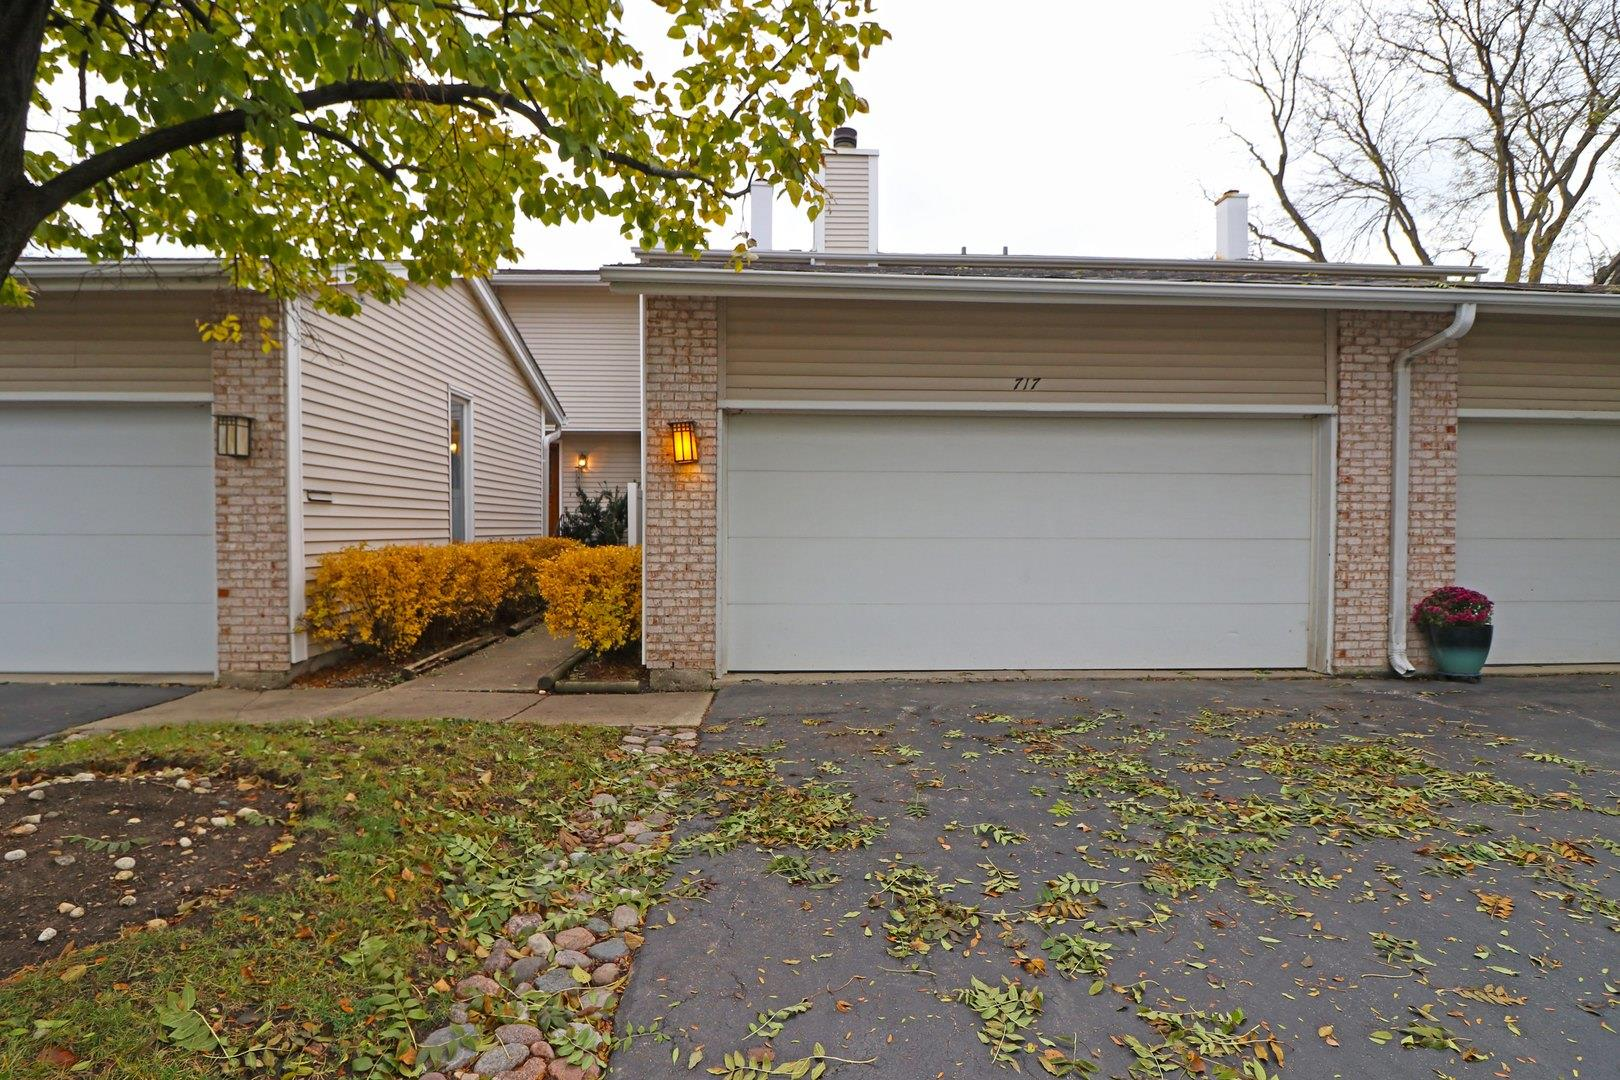 717 PINTAIL Court #717, Deerfield, IL 60015 - #: 10693469